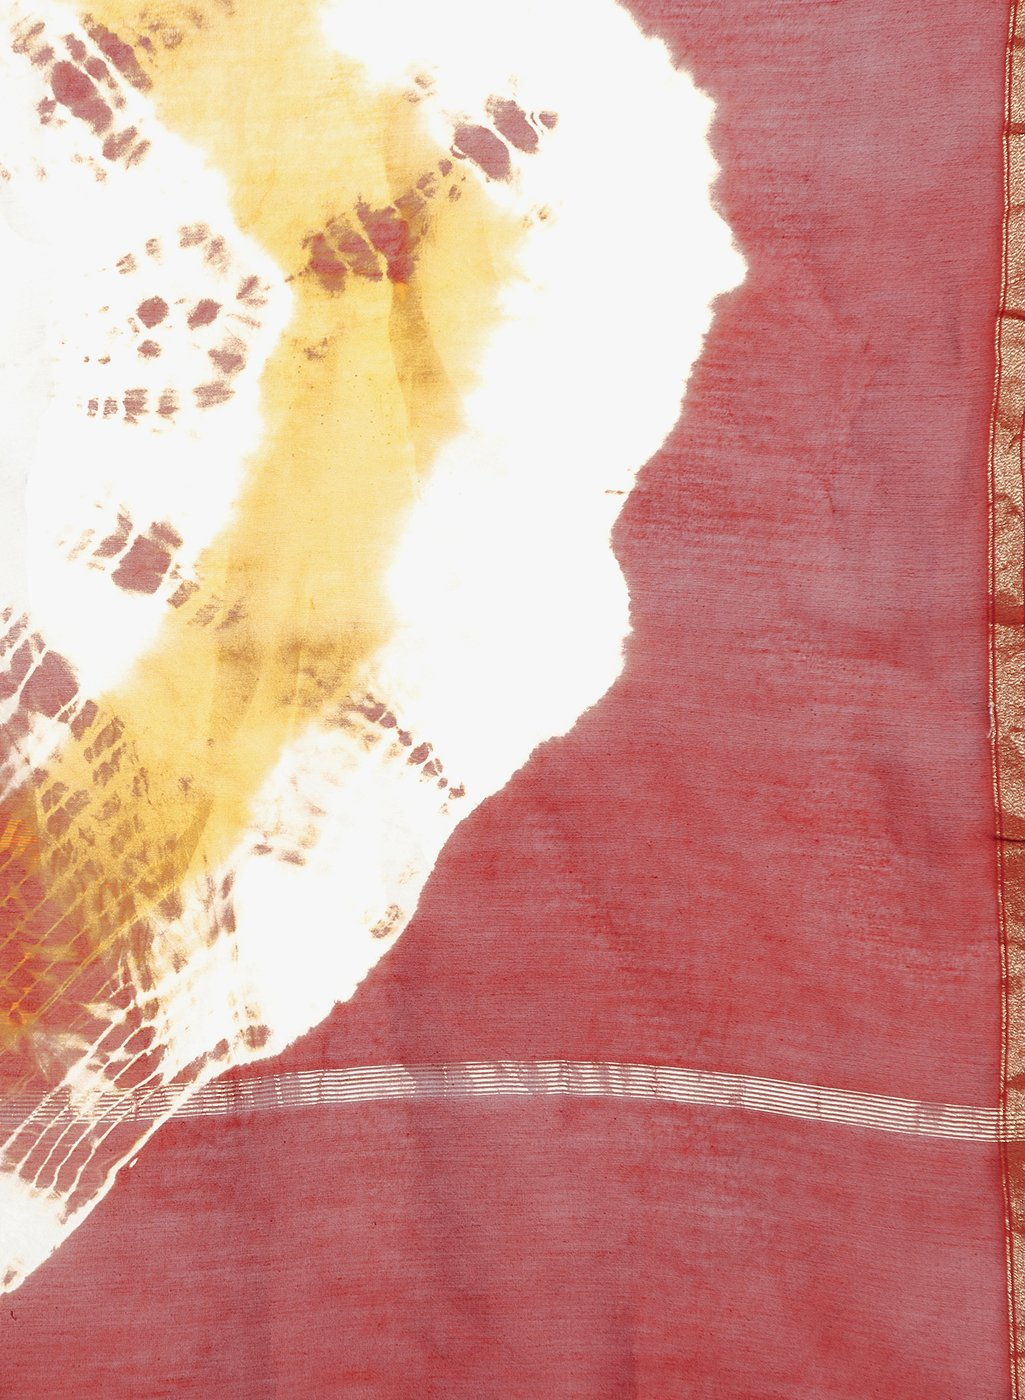 Red & Orange Chanderi Silk Shibori Hand Dyed Handcrafted Saree-Saree-Kalakari India-RDSNSA0133-Chanderi, Geographical Indication, Hand Blocks, Hand Crafted, Heritage Prints, Sarees, Shibori, Silk, Sustainable Fabrics-[Linen,Ethnic,wear,Fashionista,Handloom,Handicraft,Indigo,blockprint,block,print,Cotton,Chanderi,Blue, latest,classy,party,bollywood,trendy,summer,style,traditional,formal,elegant,unique,style,hand,block,print, dabu,booti,gift,present,glamorous,affordable,collectible,Sari,Saree,prin